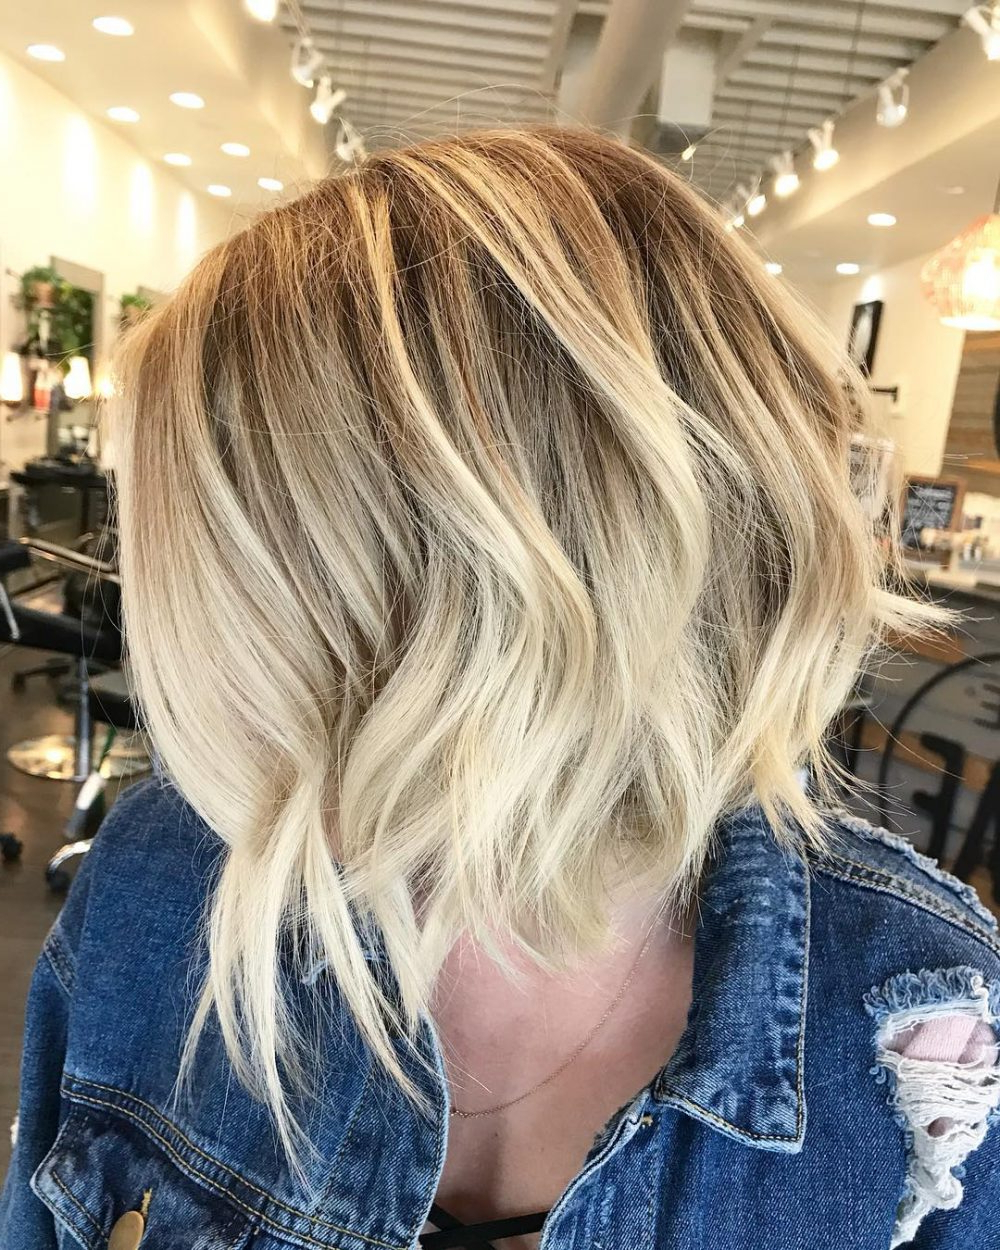 34 Best Choppy Layered Hairstyles (That Will Flatter Anyone) With Regard To Well Known Chopped Medium Haircuts For Straight Hair (Gallery 12 of 20)